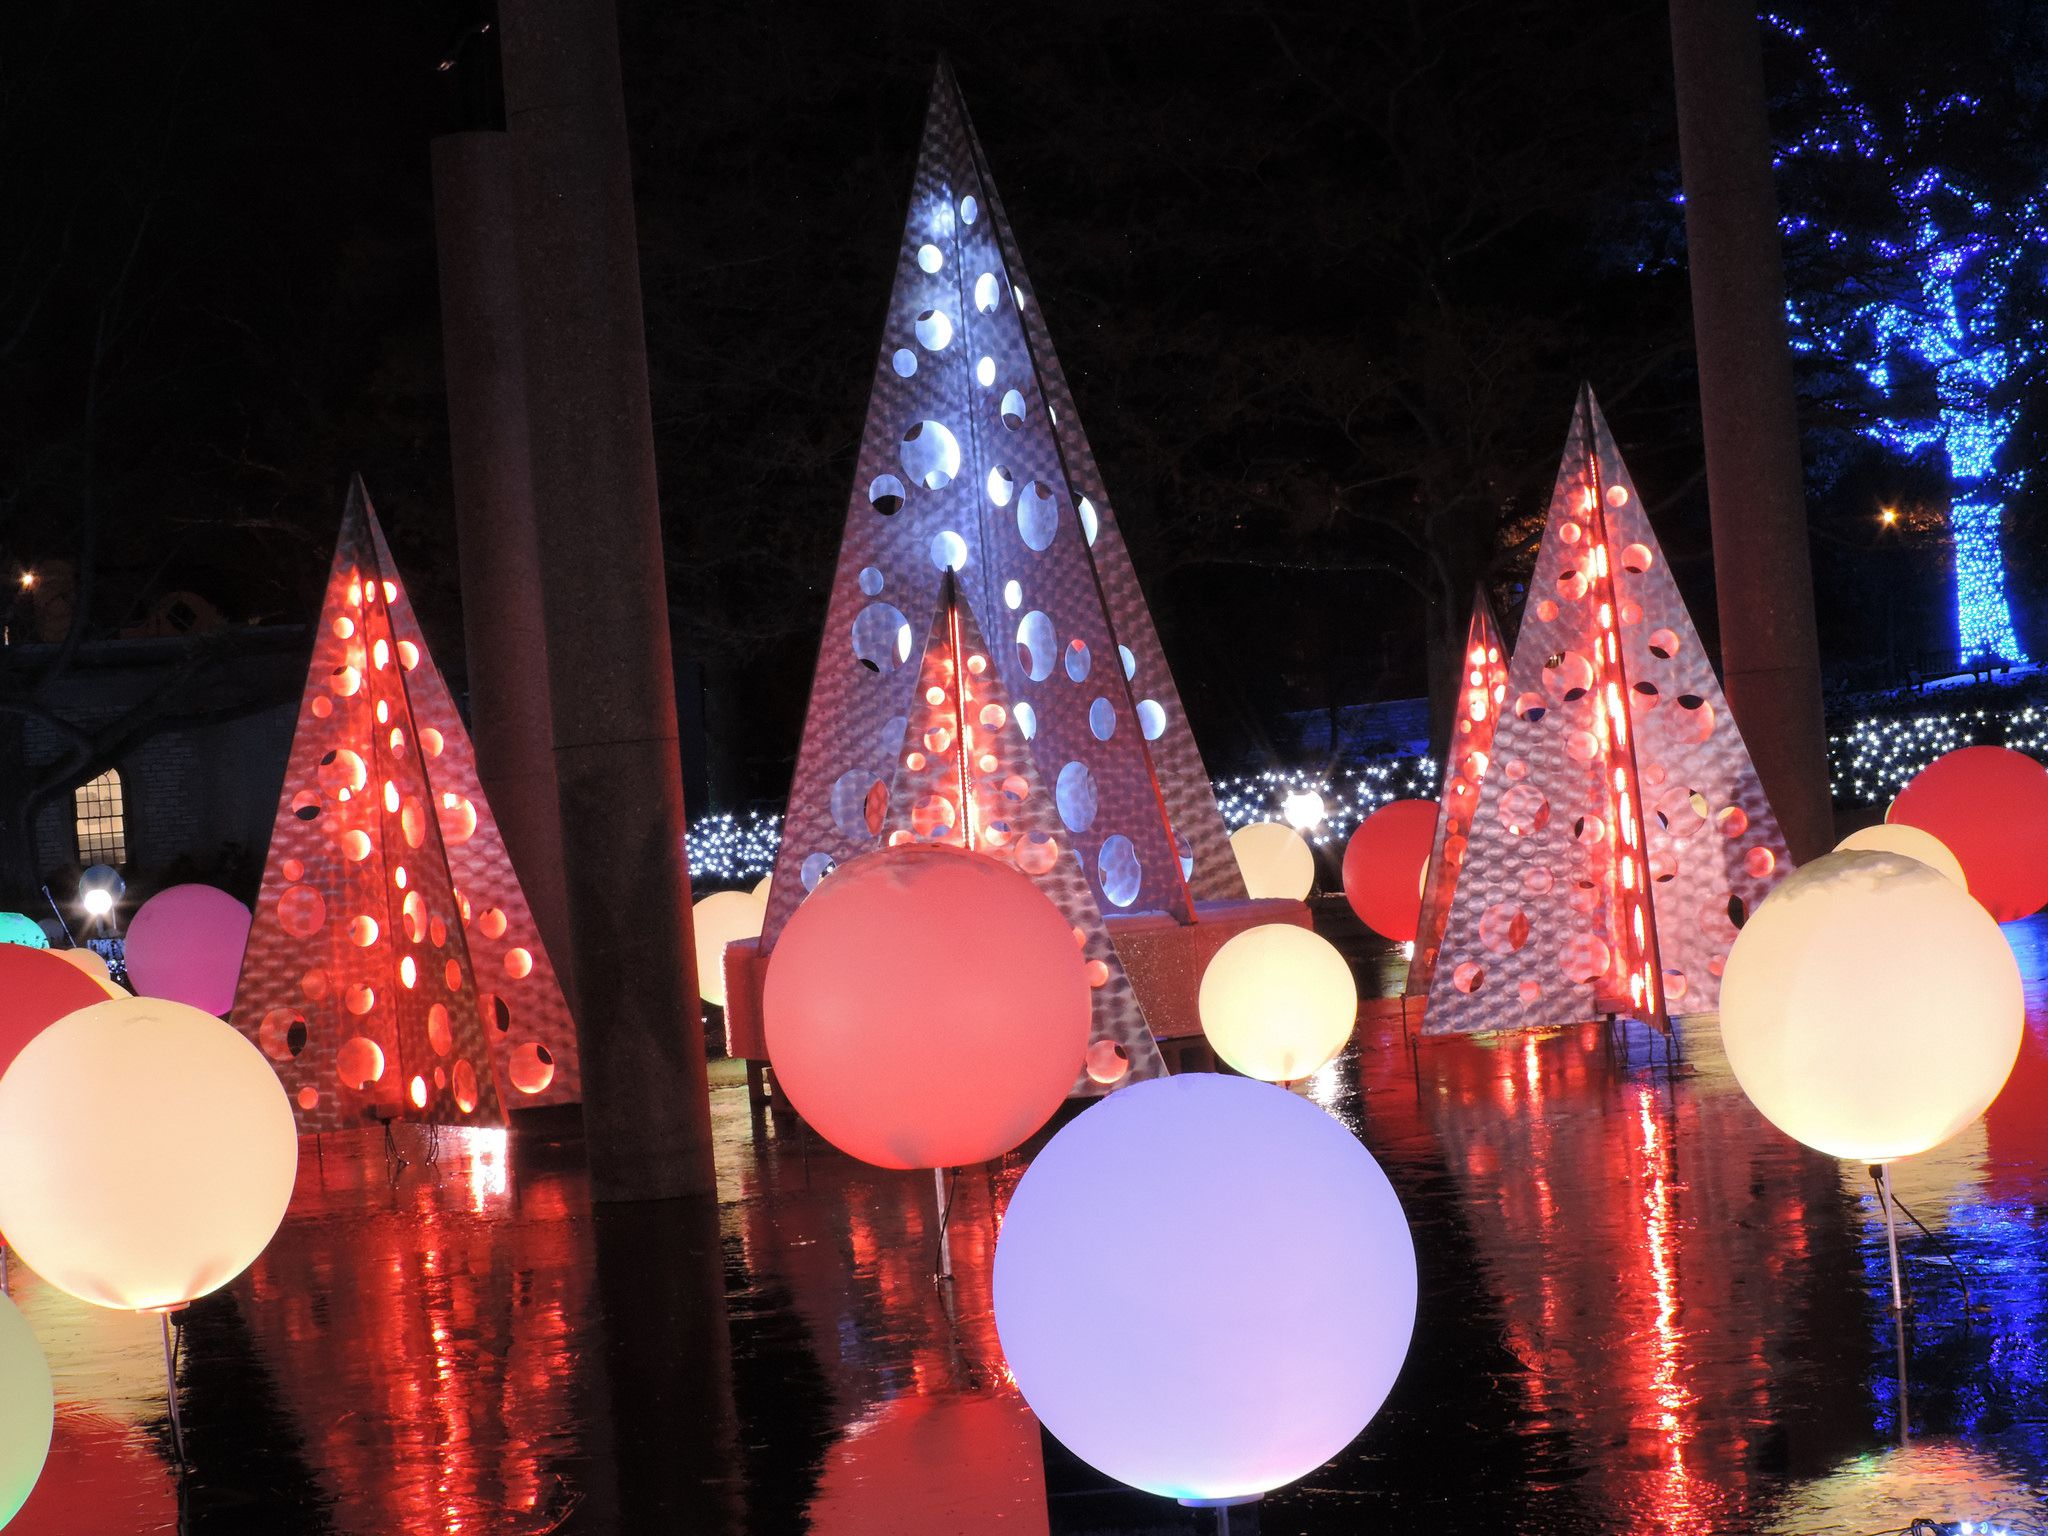 Things To Do On Christmas Eve 2020 Botanical Gardens St.Louis Garden Glow Holiday Lights at Missouri Botanical Garden